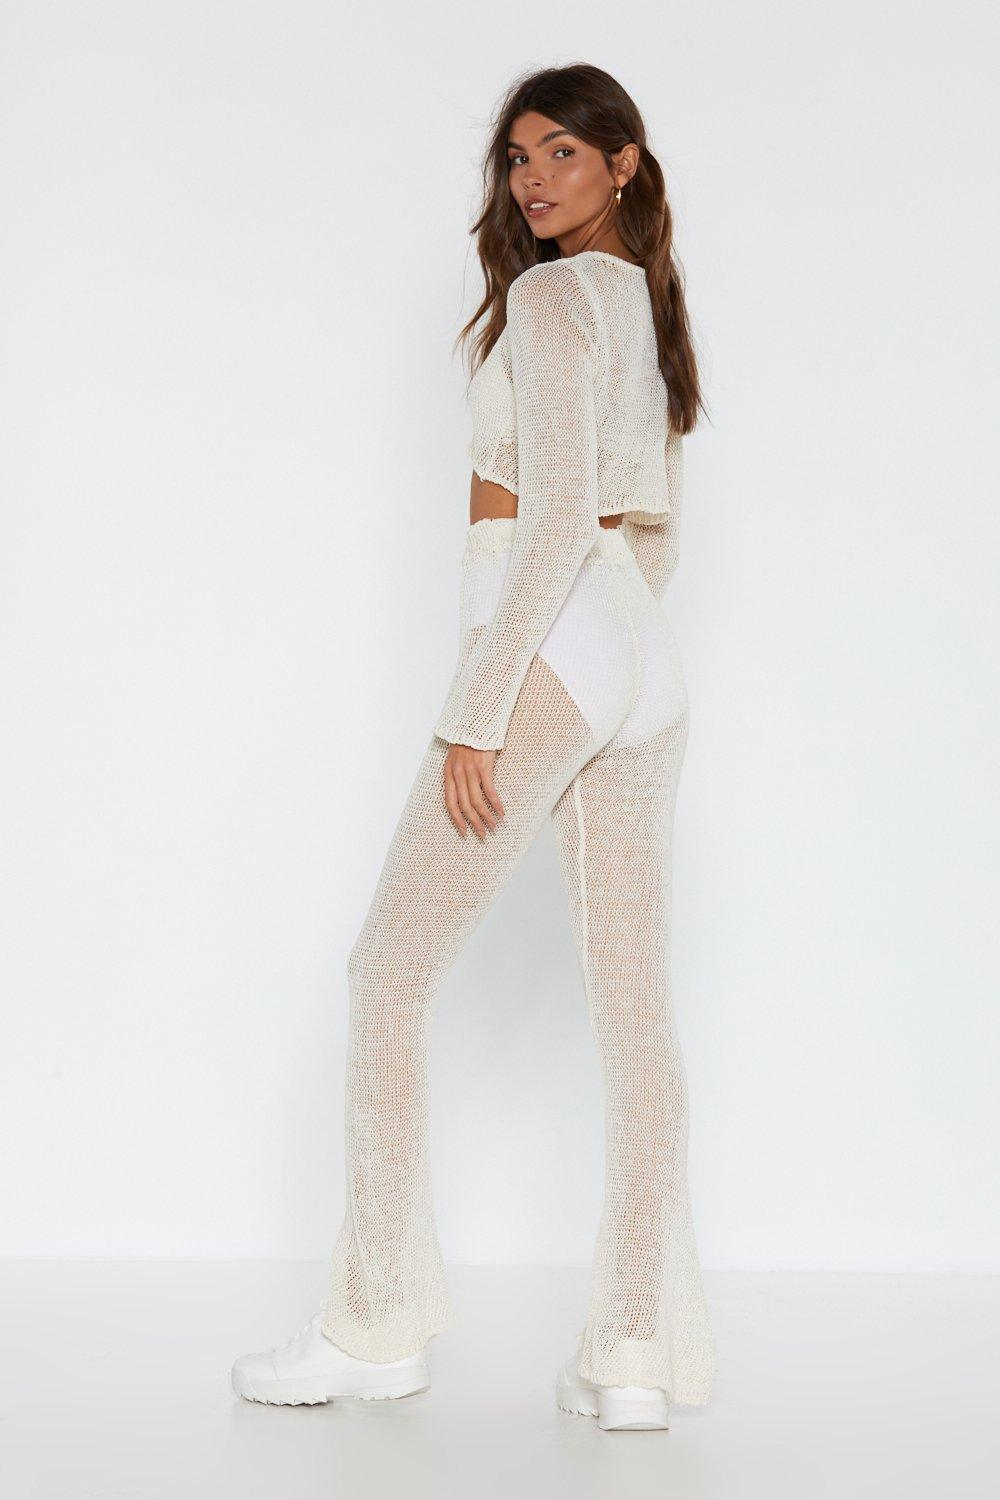 12e4188764 Catch of the Day Crochet Crop Top and Pants Set | Shop Clothes at ...